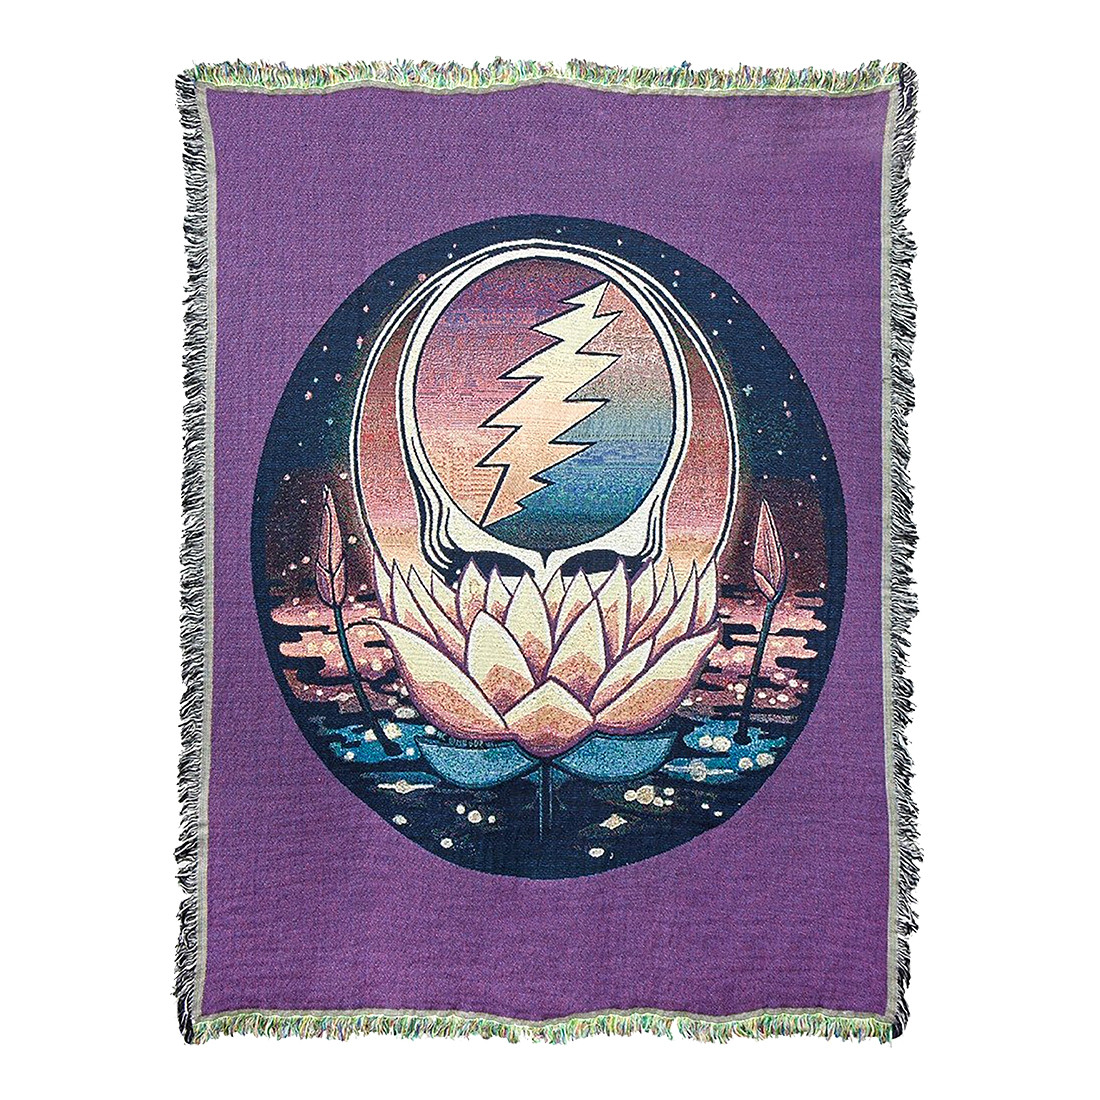 GD Lotus SYF Woven Blanket